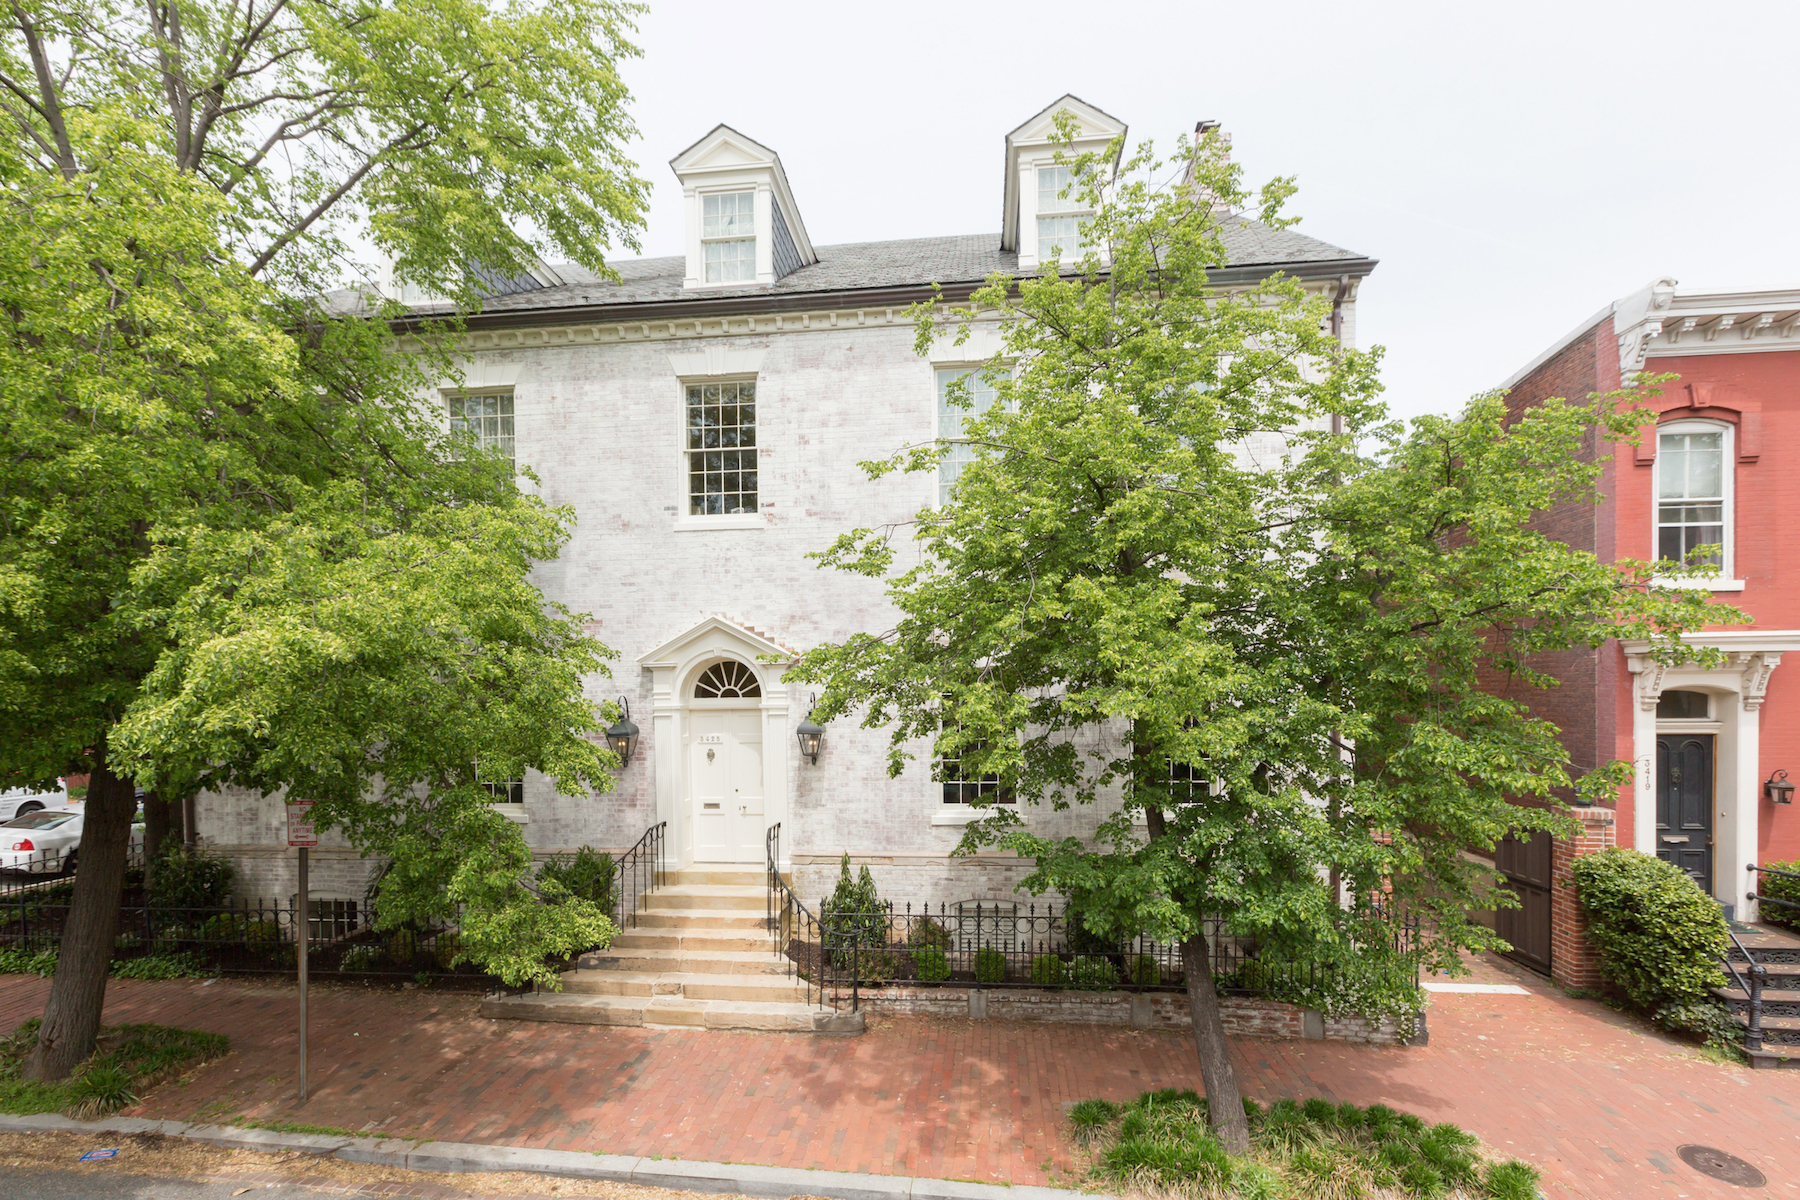 Single Family Home for Sale at Georgetown 3425 Prospect St NW Georgetown, Washington, District Of Columbia 20007 United States